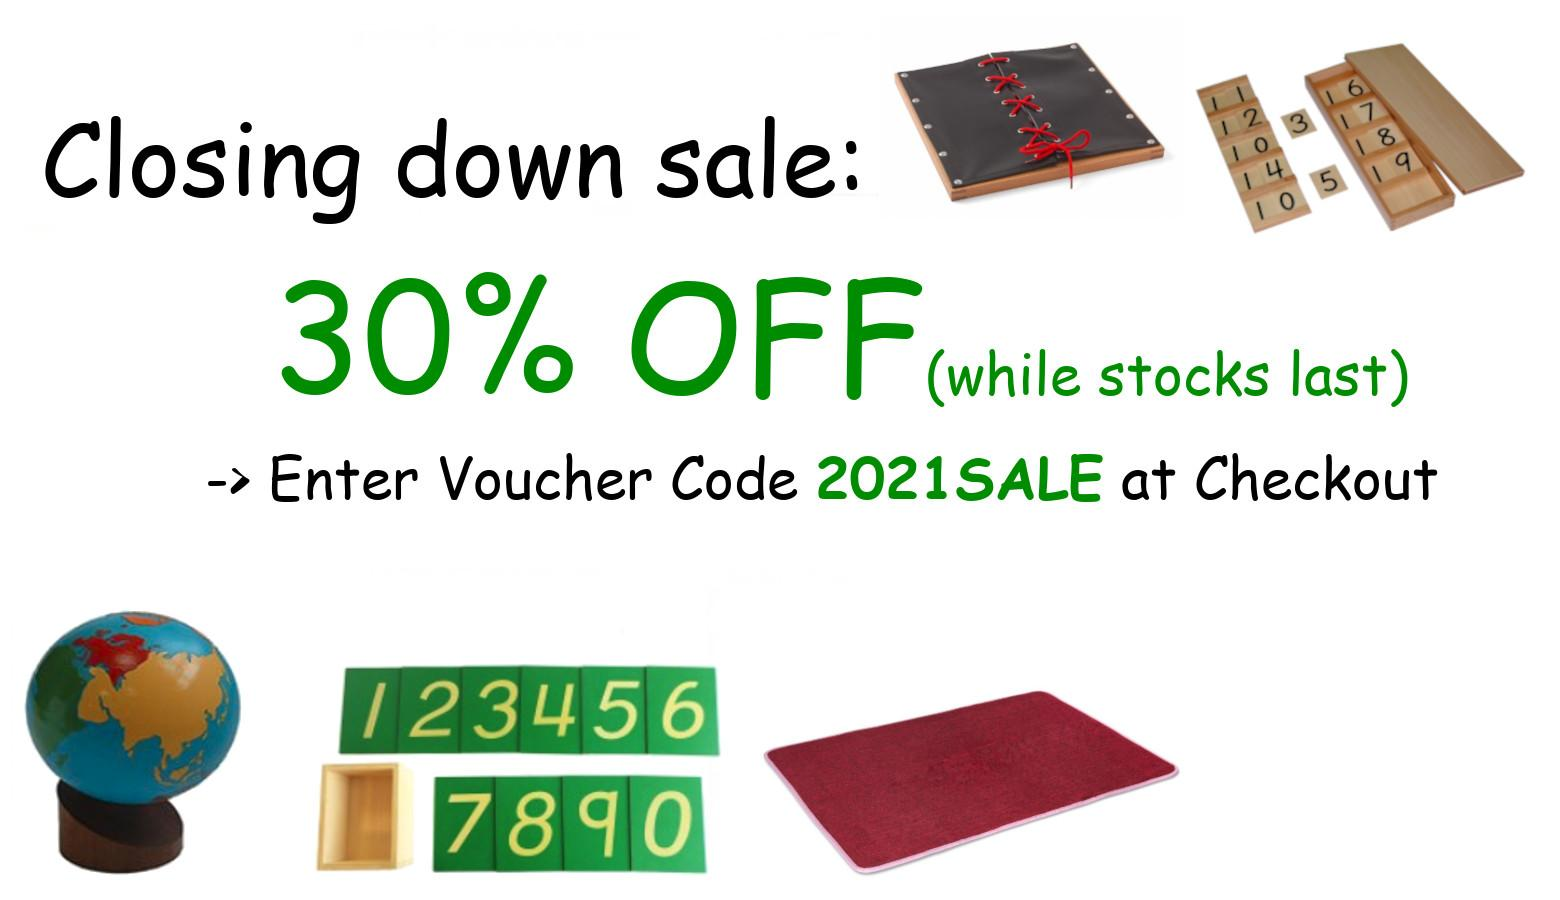 Closing Down Sale - 30% off stock